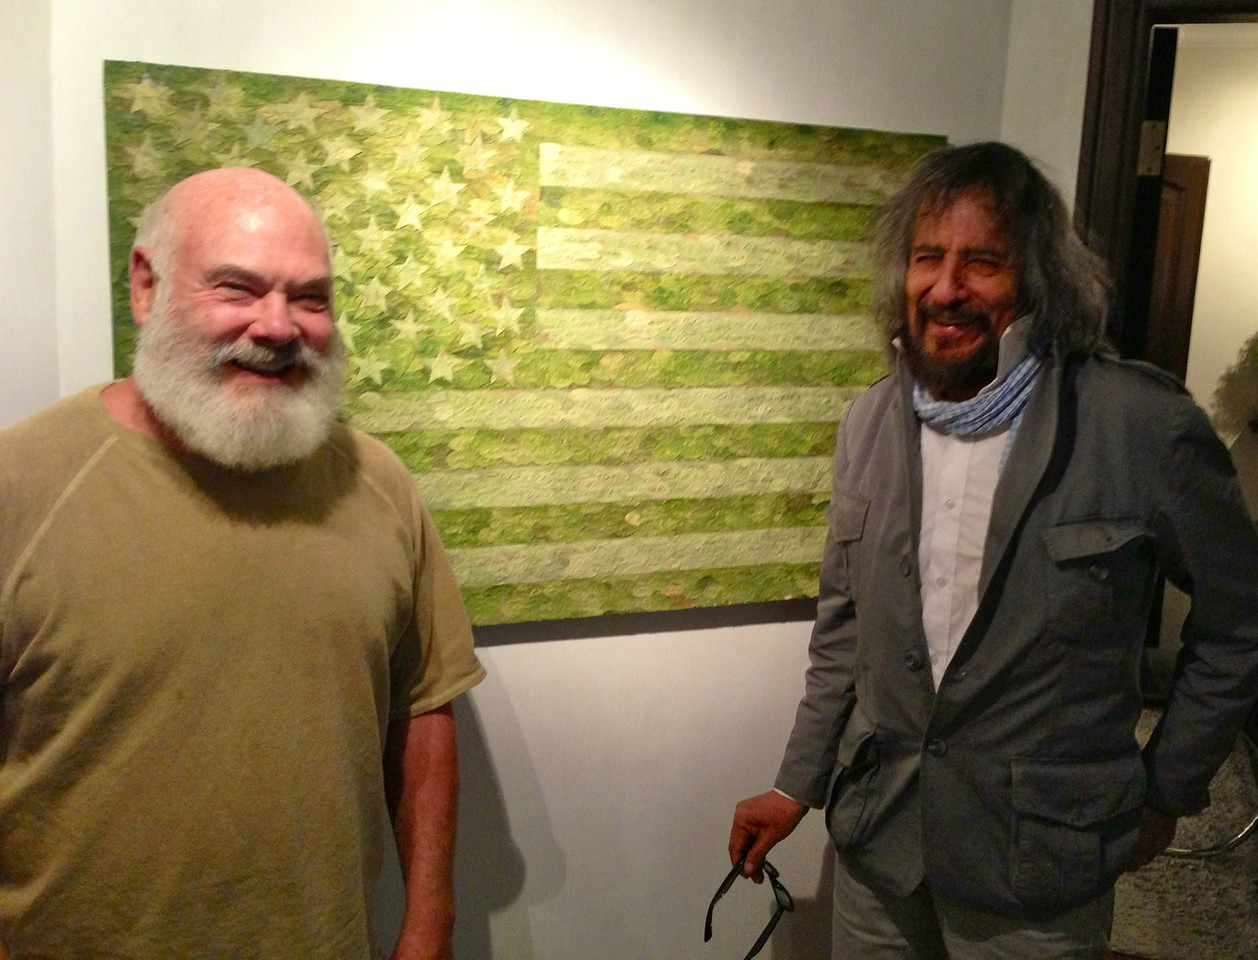 I'm with Gastón Ugalde, best-known living Bolivian artist at his gallery in La Paz.  Among his works are beautiful collages made from coca leaves.